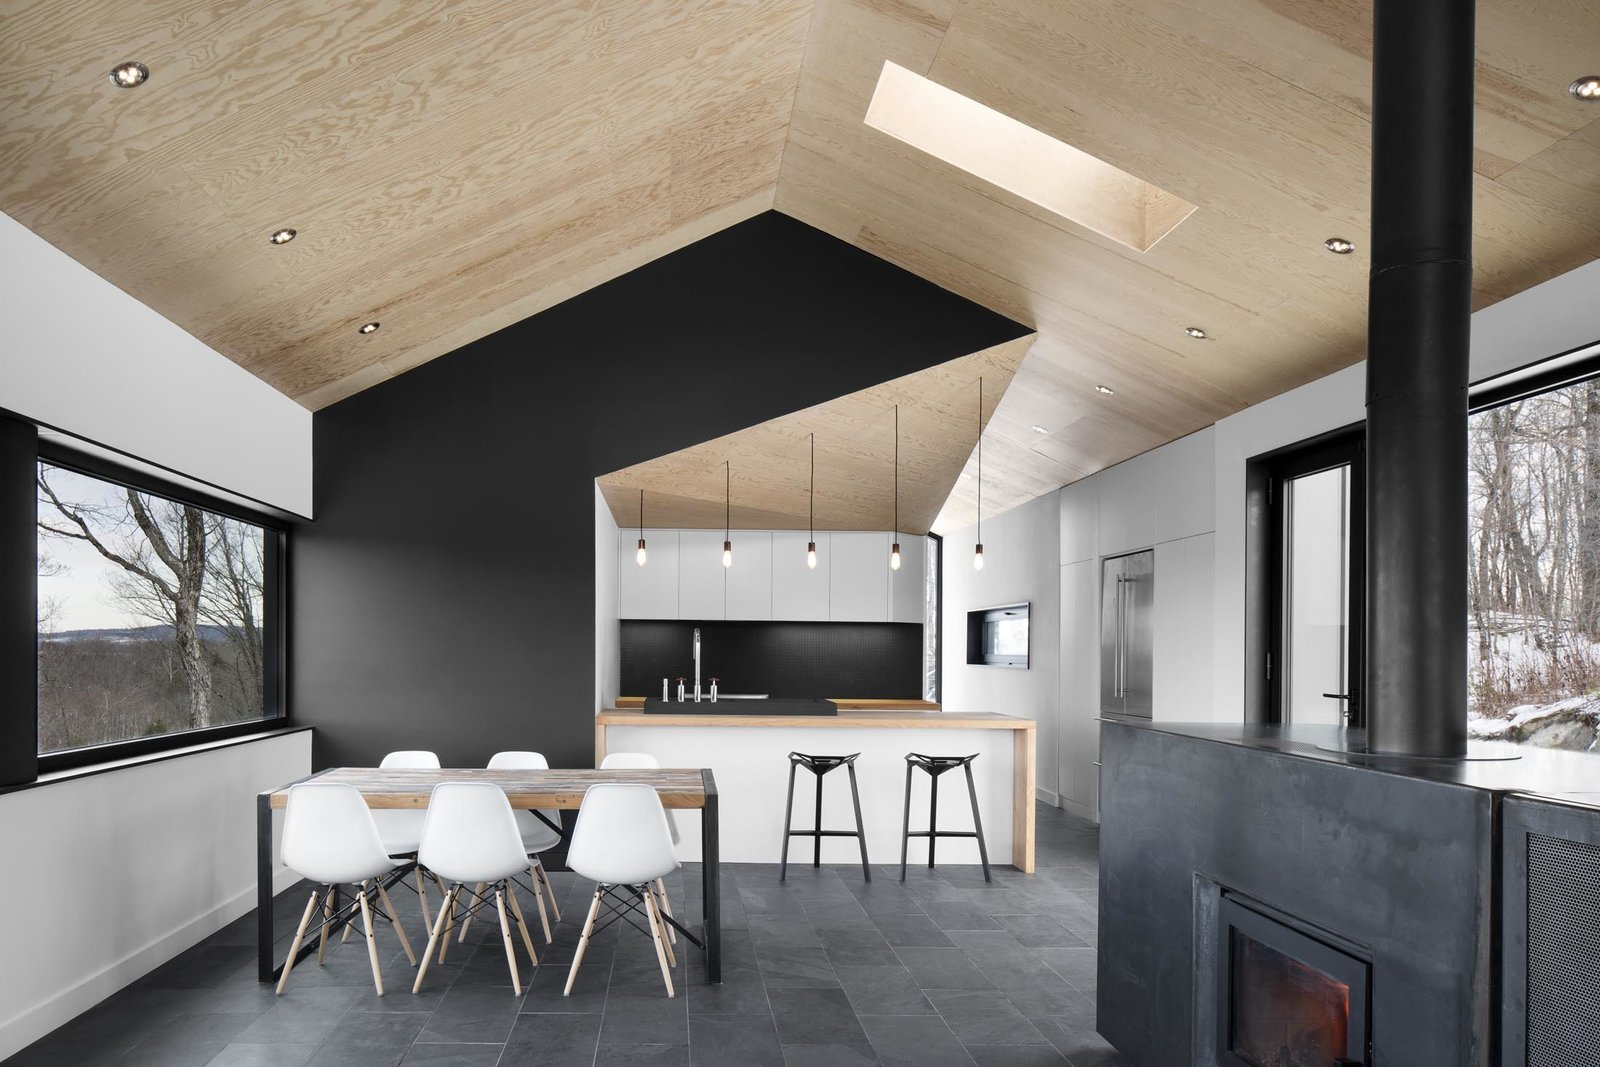 "Dining Room, Table, and Chair The architects stuck to a gray-scale color palette, installing slate tile floors that softly contrast with the white walls and Eames dining chairs. ""It lets the views out the windows become the focus,"" Dworkind explains. Doses of pure black accent important features, like the central wall that divides the kitchen and master bedroom behind it from the main living space.  Best Photos"